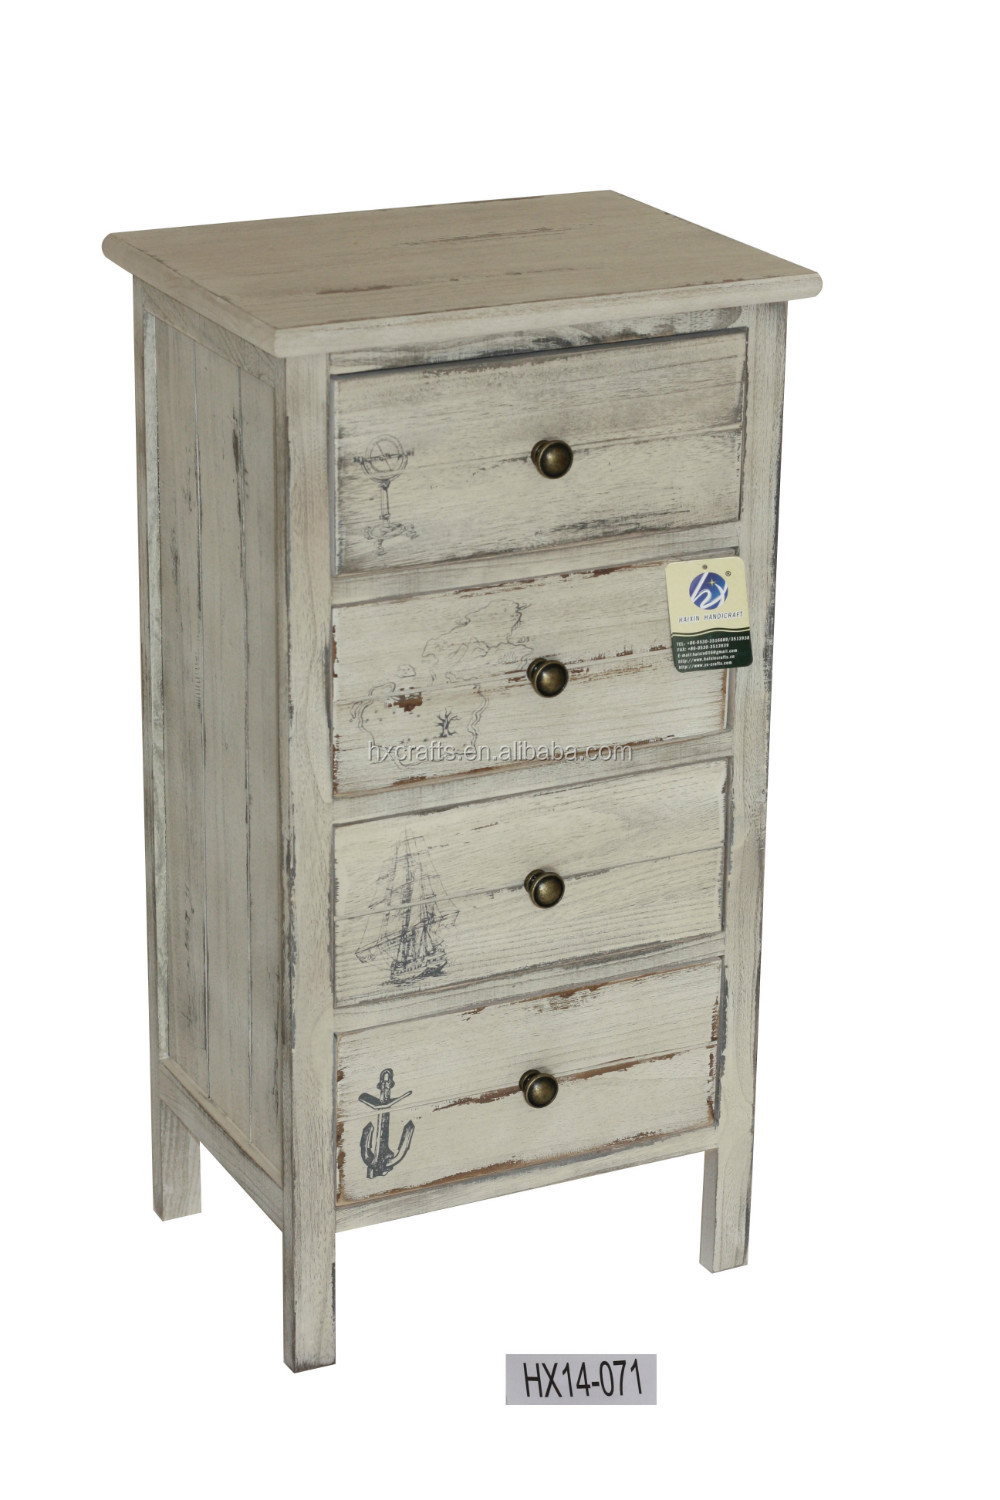 bedroom furniture shabby chic furniture unfinished wood furniture wholesale. Bedroom Furniture Shabby Chic Furniture Unfinished Wood Furniture